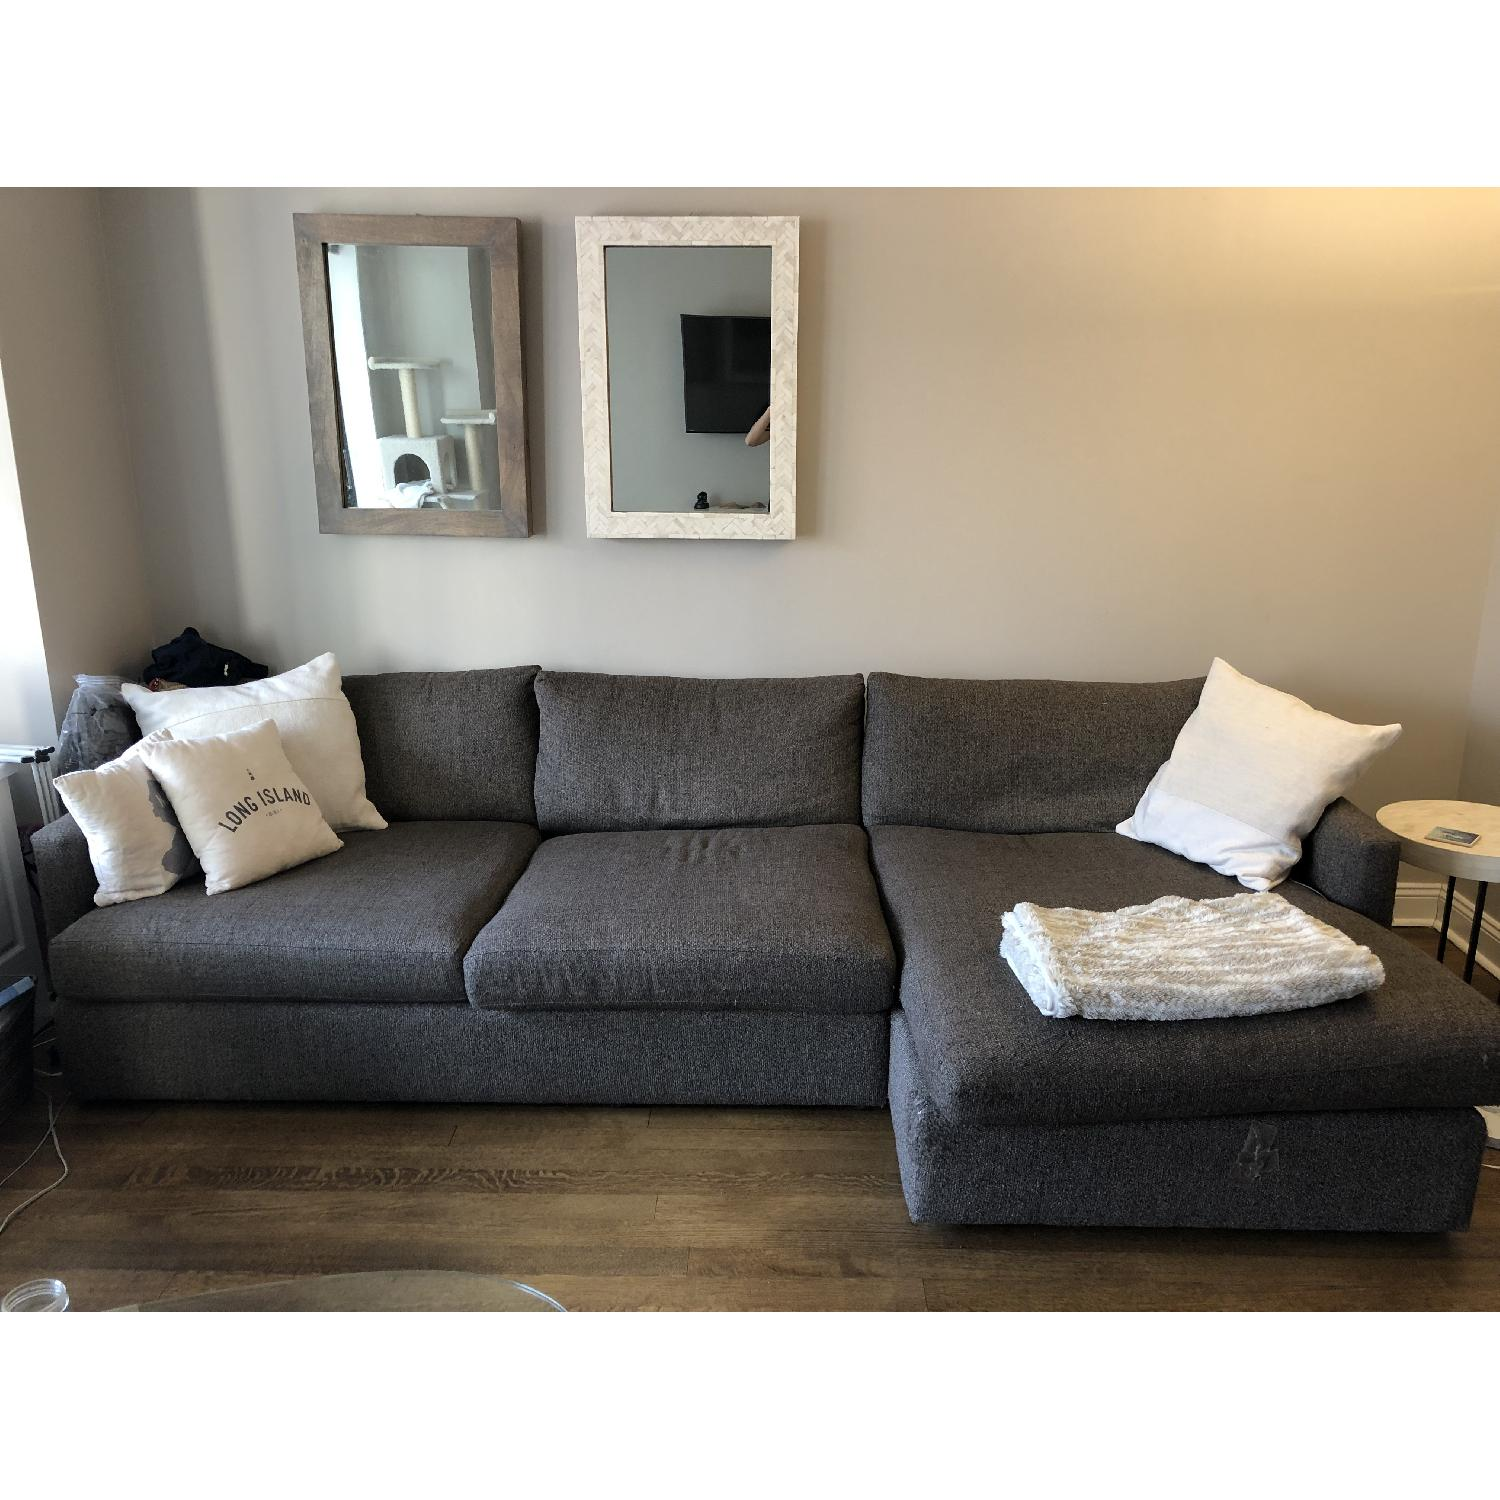 Crate & Barrel Lounge II Left Chaise Sectional Sofa-0